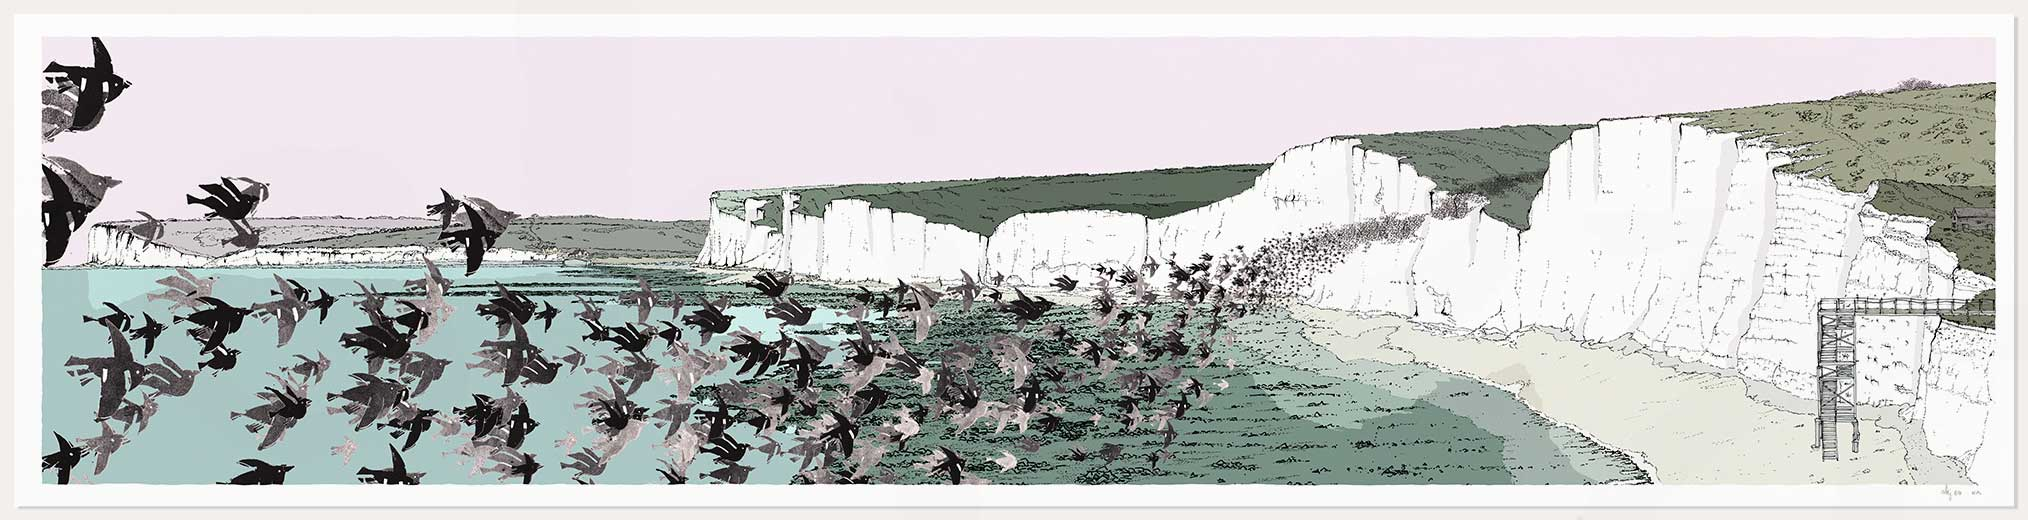 print named Birling Gap Starling Murmuration by artist alej ez